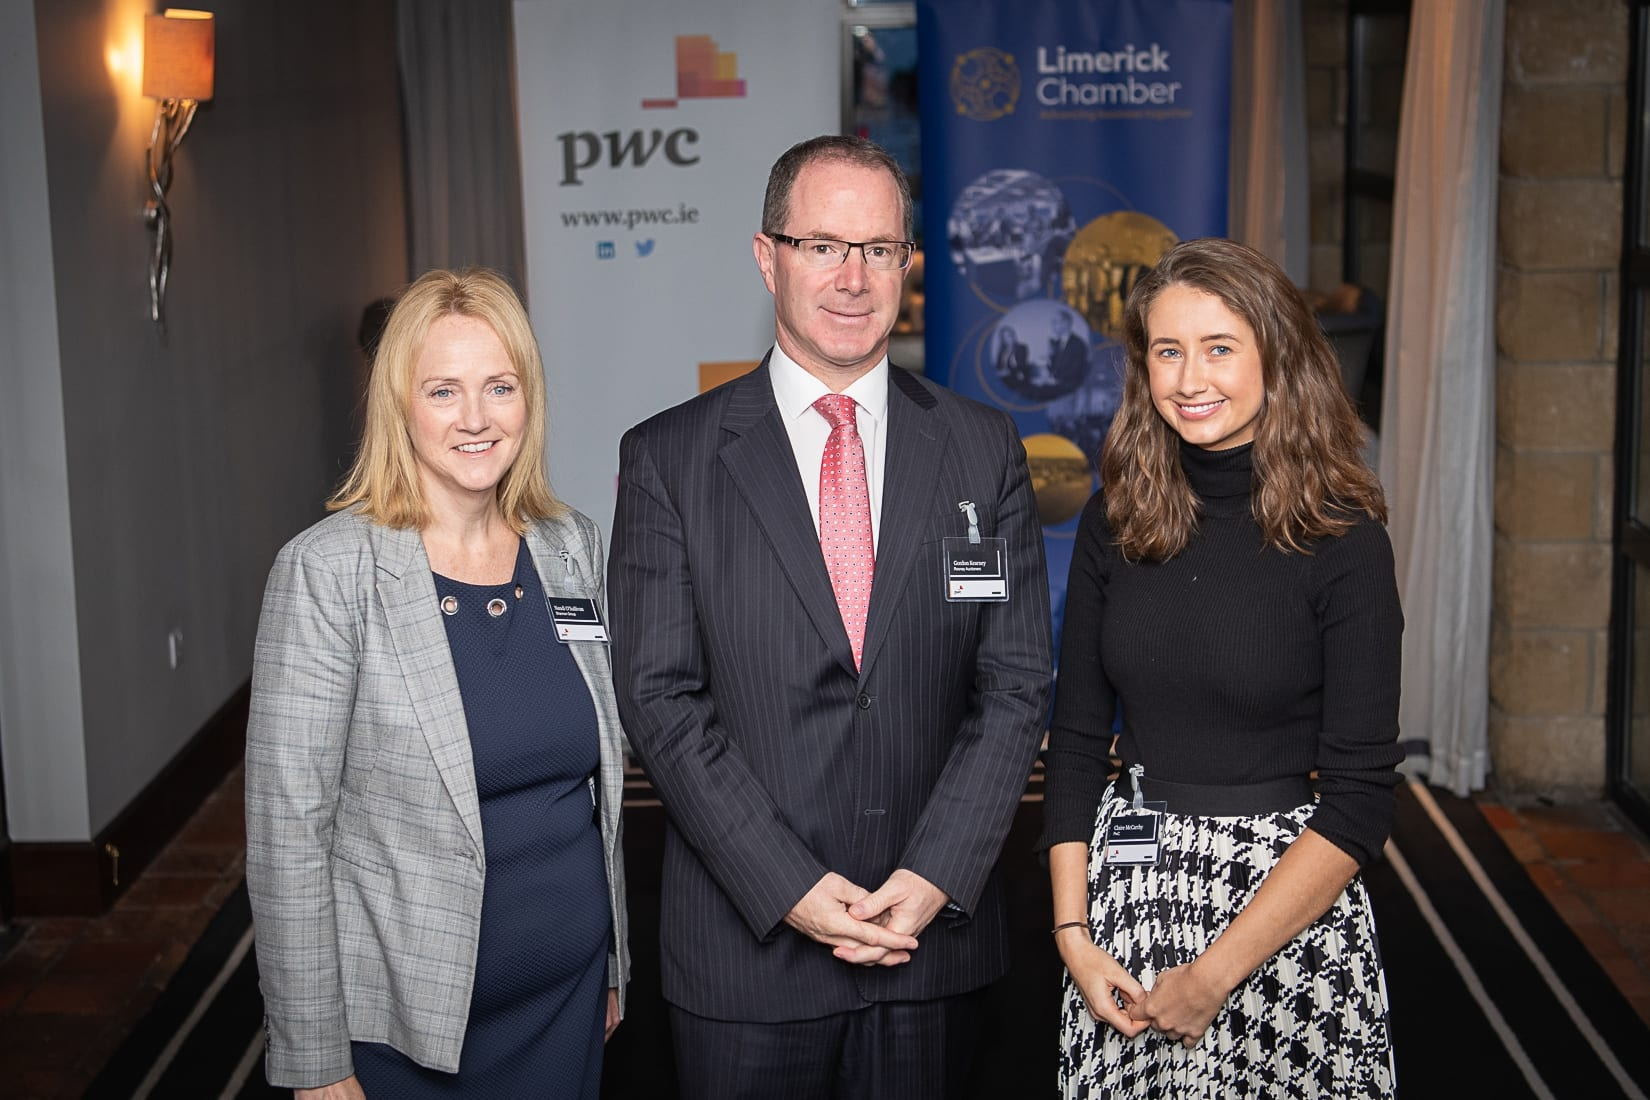 PWC Budget Breakfast in association with the Limerick Chamber which took place in the Castletroy Park Hotel on 9th October 2019, from left to right: Nandi O'Sullivan - Shannon Group, Goran Kearney - Rooney Auctioneers, Claire McCarthy - PWC.  Photo by Morning Star Photography